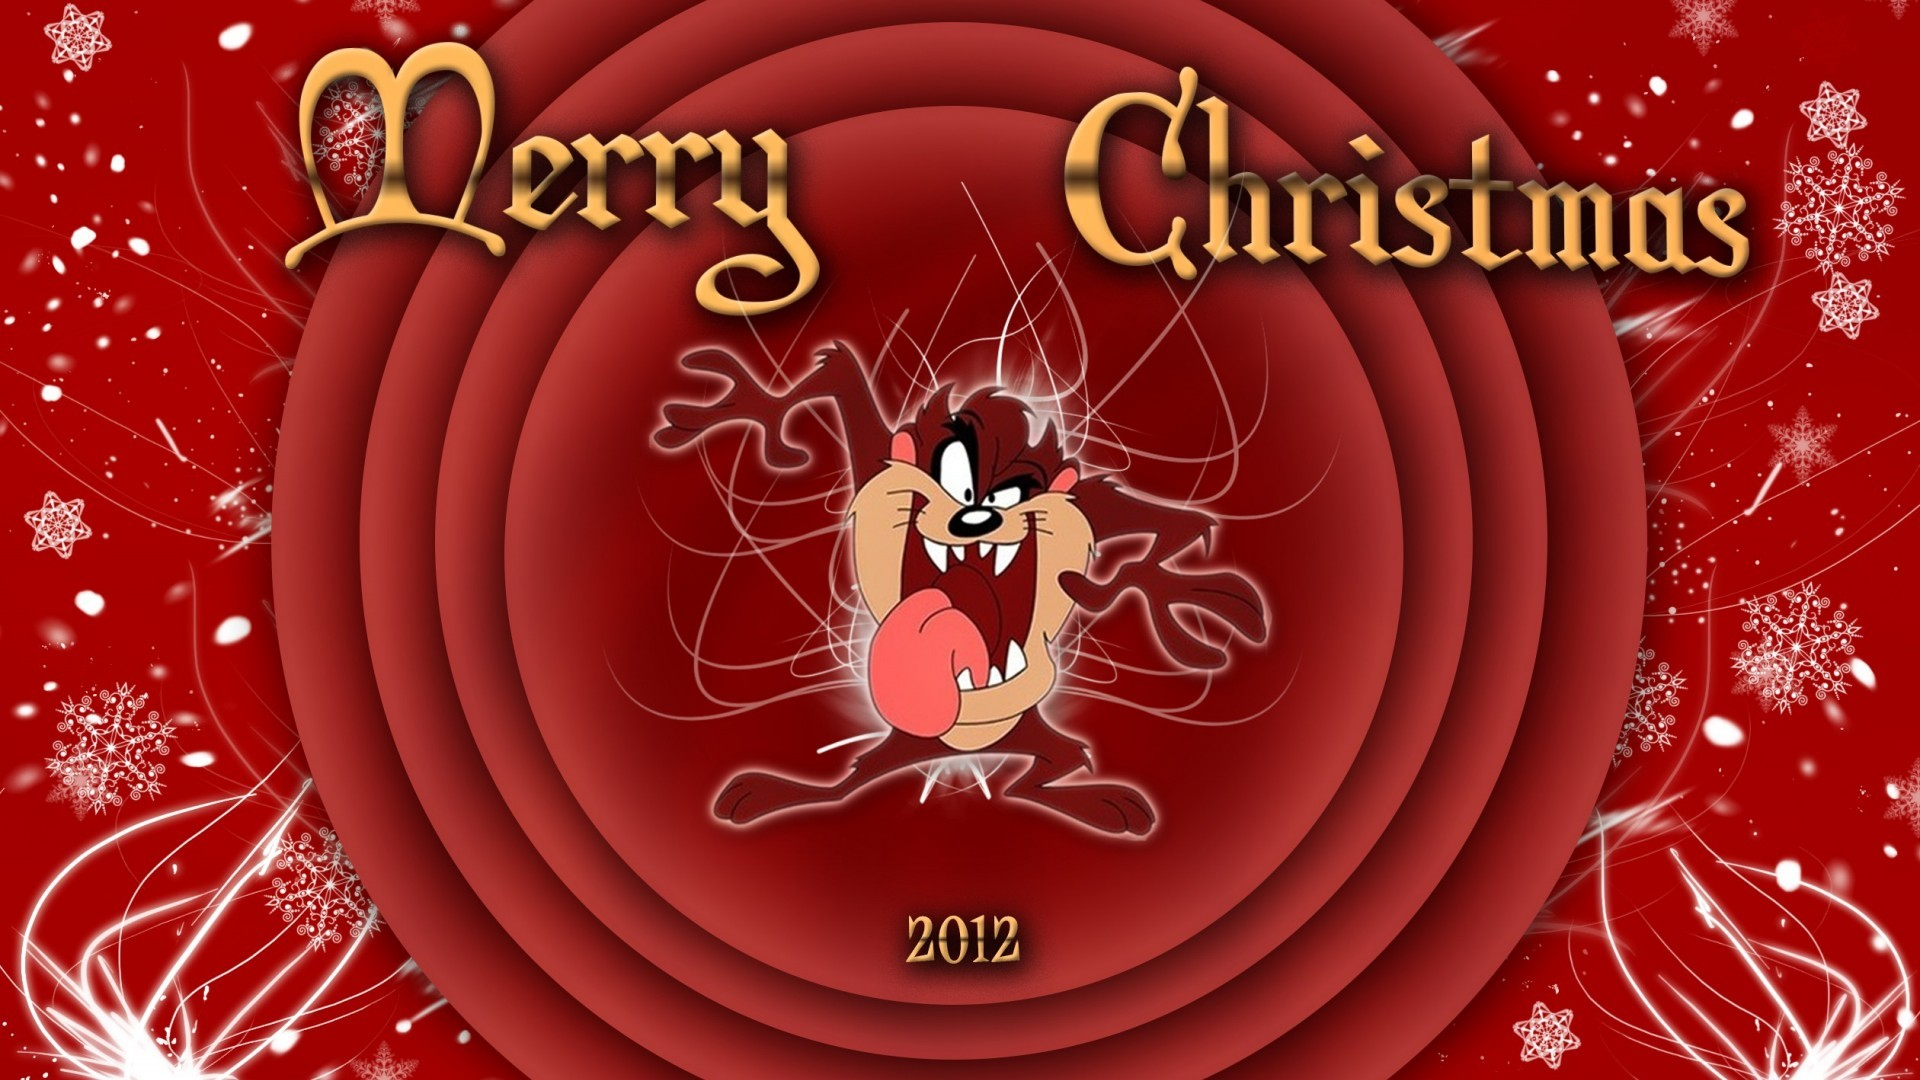 1920x1080 Looney tunes christmas fd wallpaper |  | 184434 | WallpaperUP